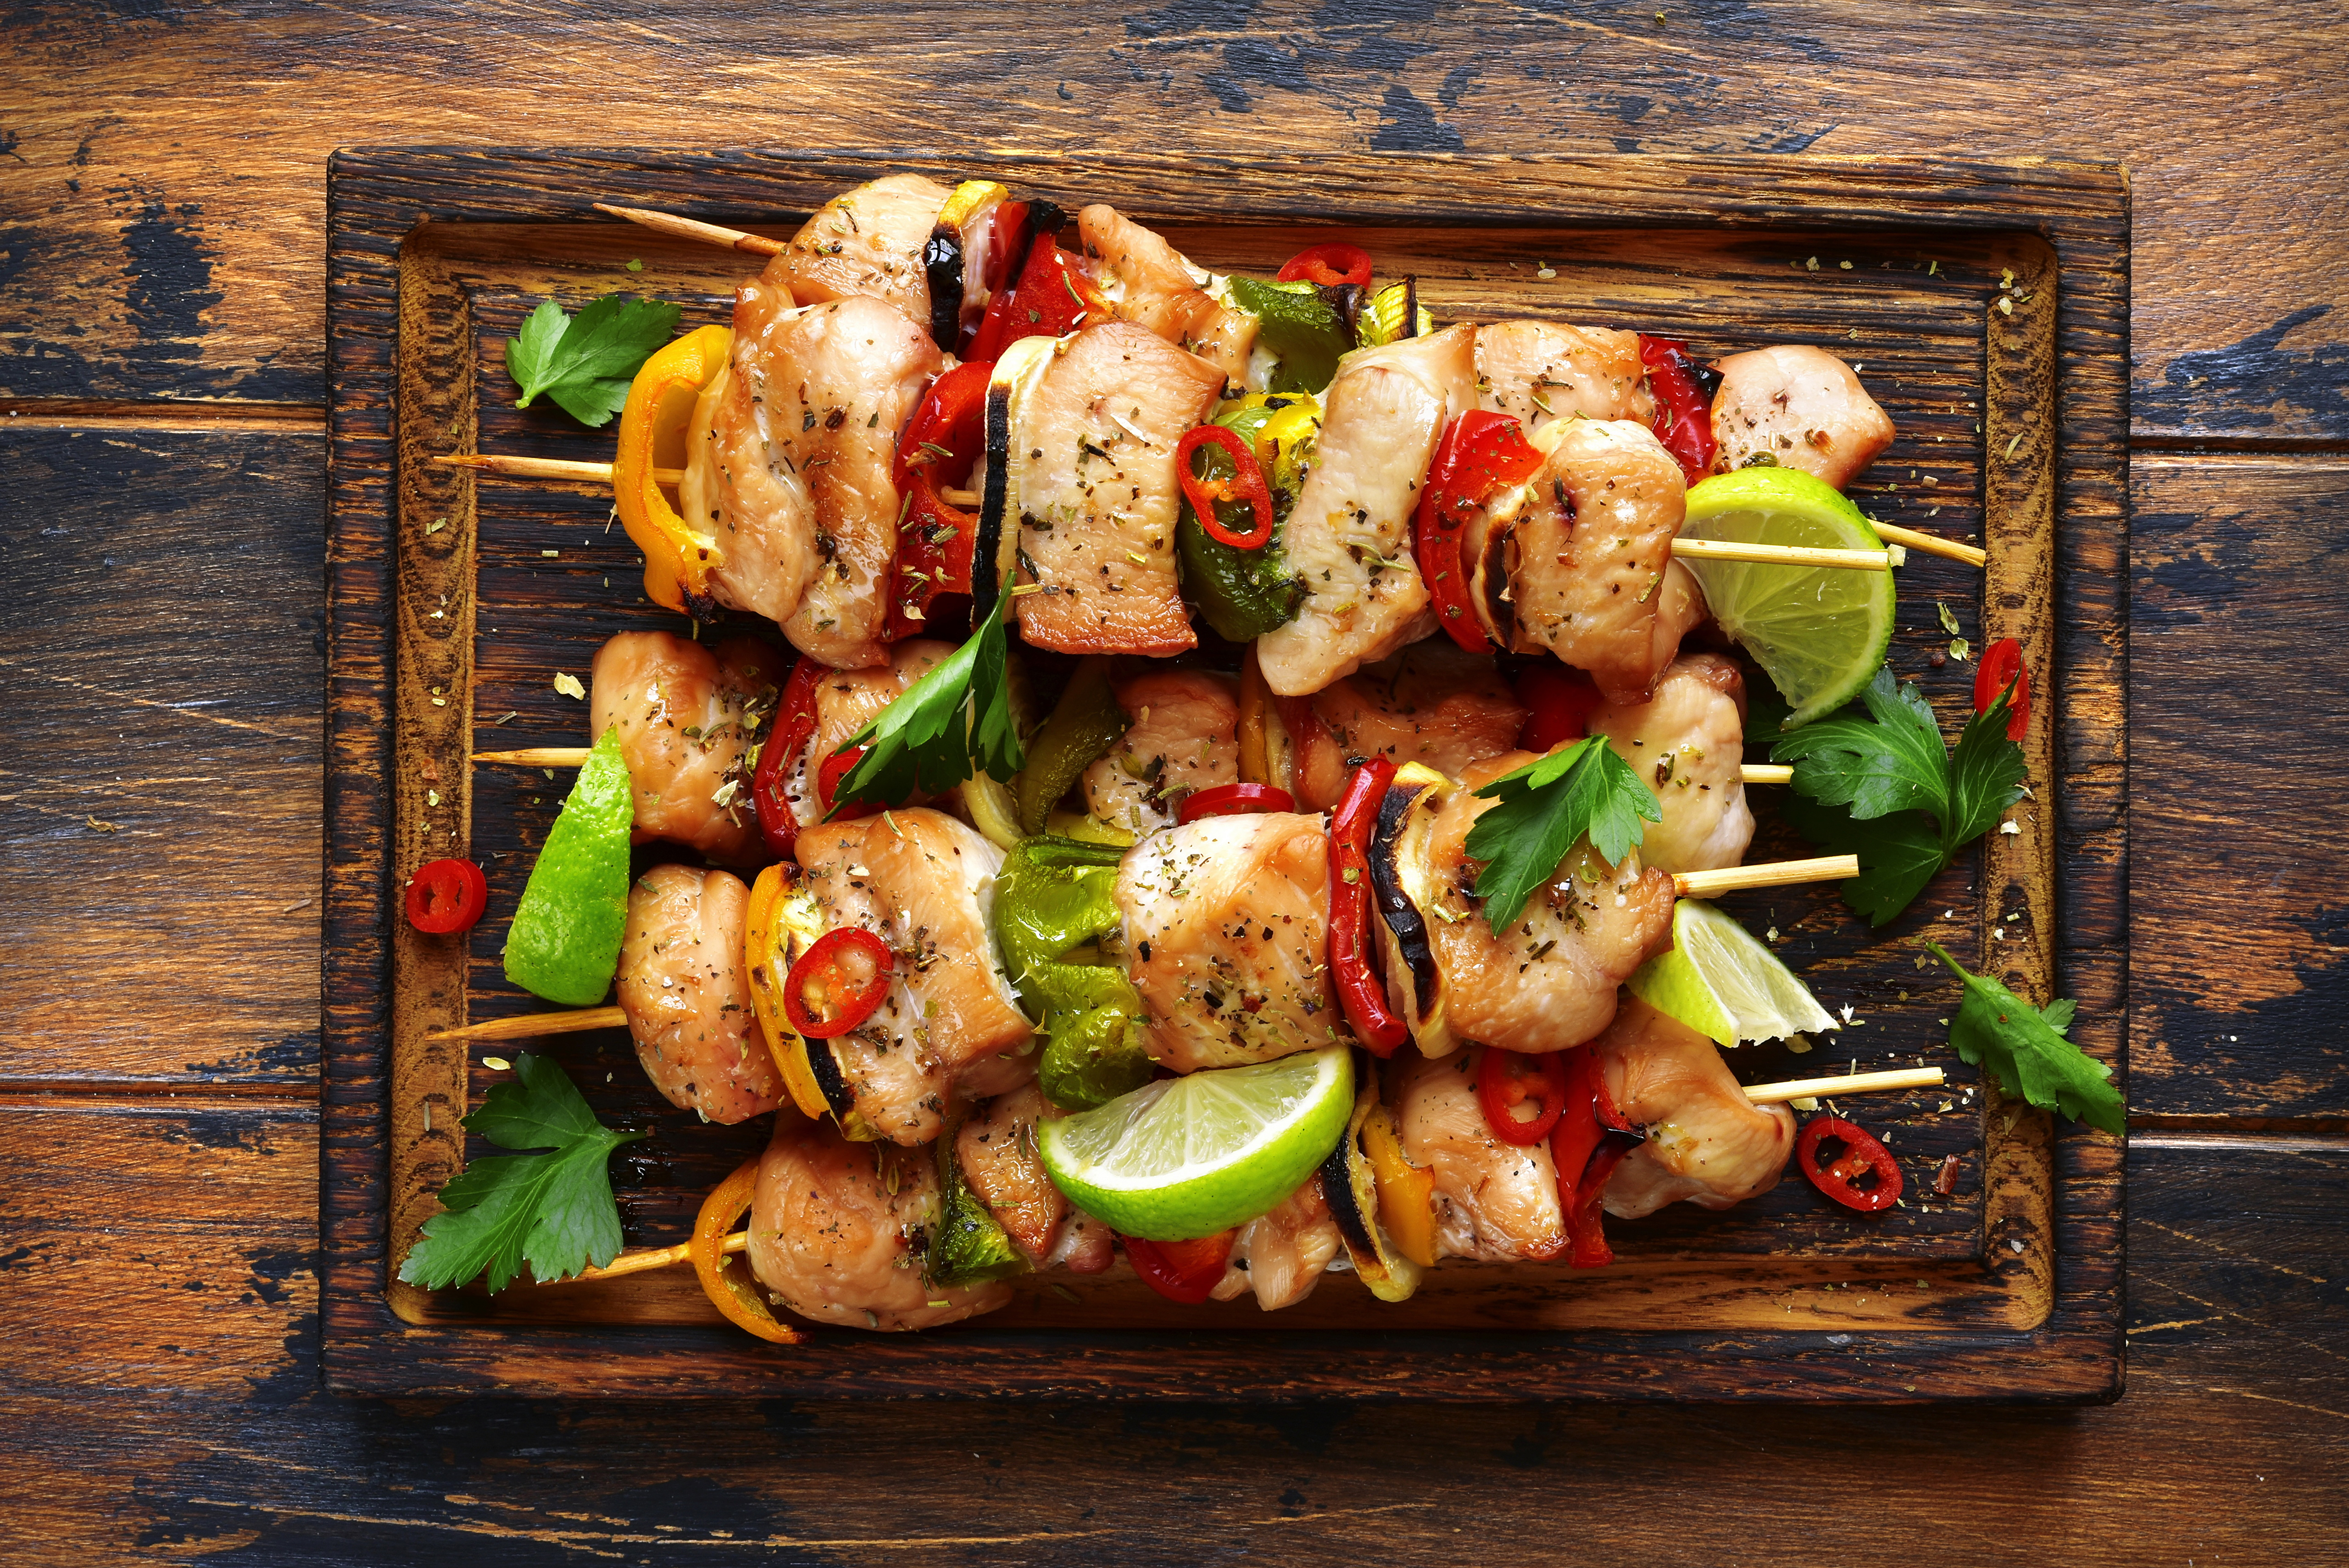 Picture Lime Shashlik Food Vegetables Cutting board 5120x3418